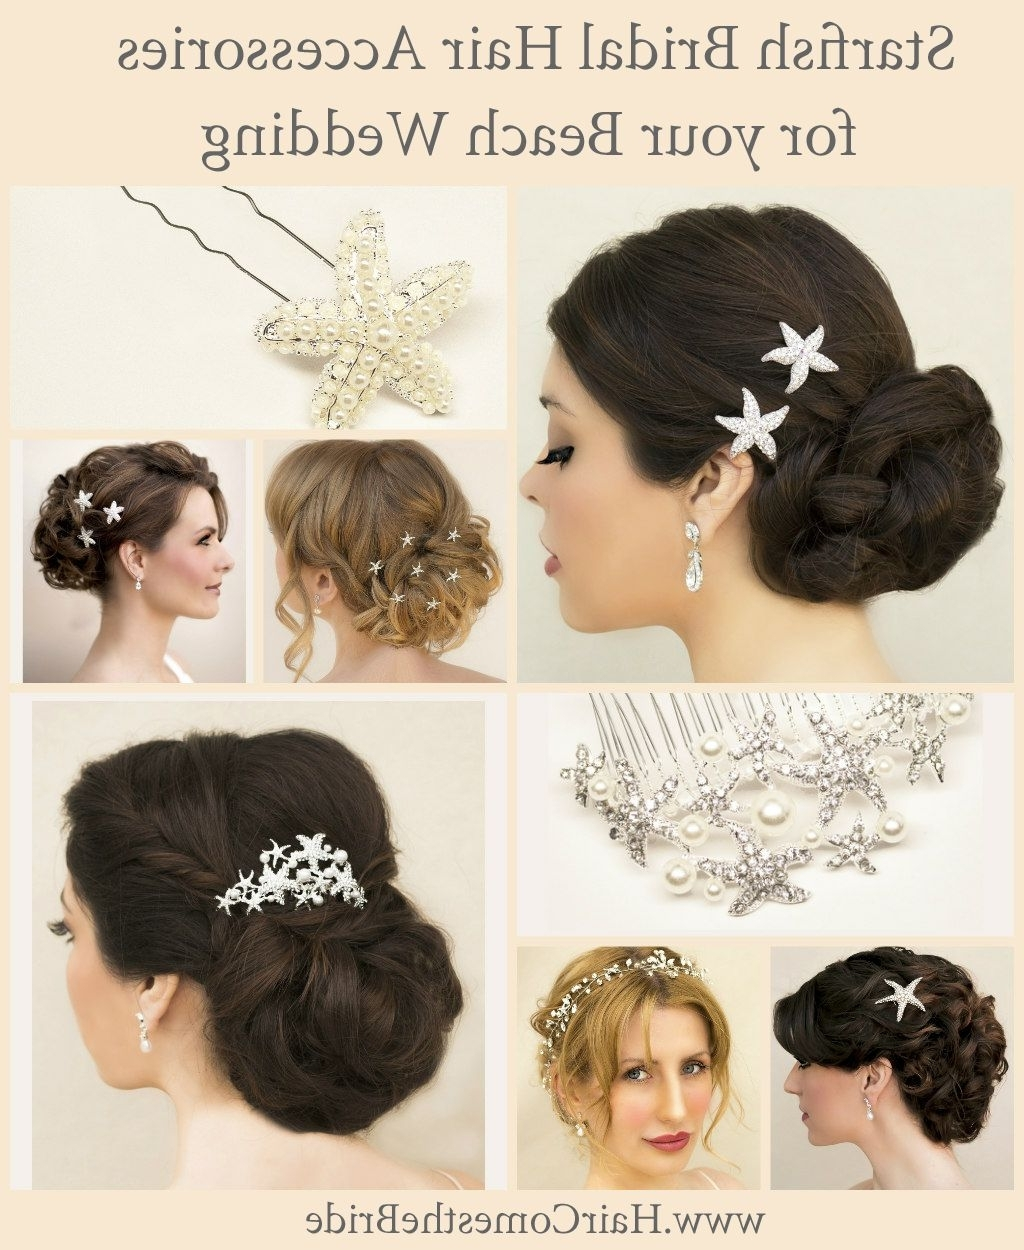 Widely Used Wedding Hairstyles With Hair Accessories With Starfish Bridal Hair Accessories For Your Beach Wedding (View 14 of 15)